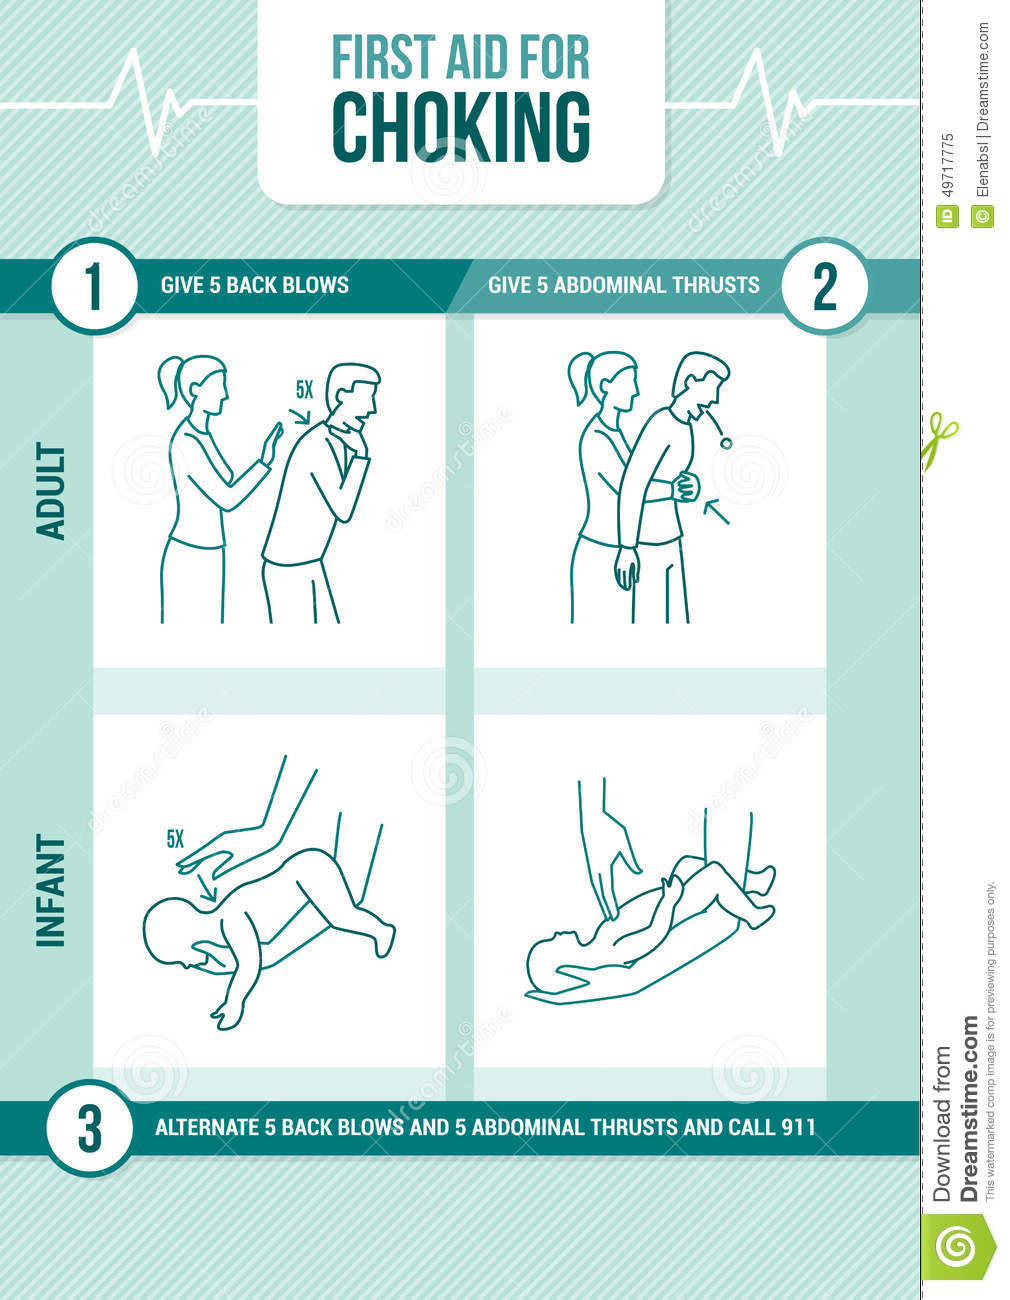 procedure for first aid Why is first aid important we  basic first aid knowledge is comprised of relatively simple techniques and procedures that can be performed with limited equipment.